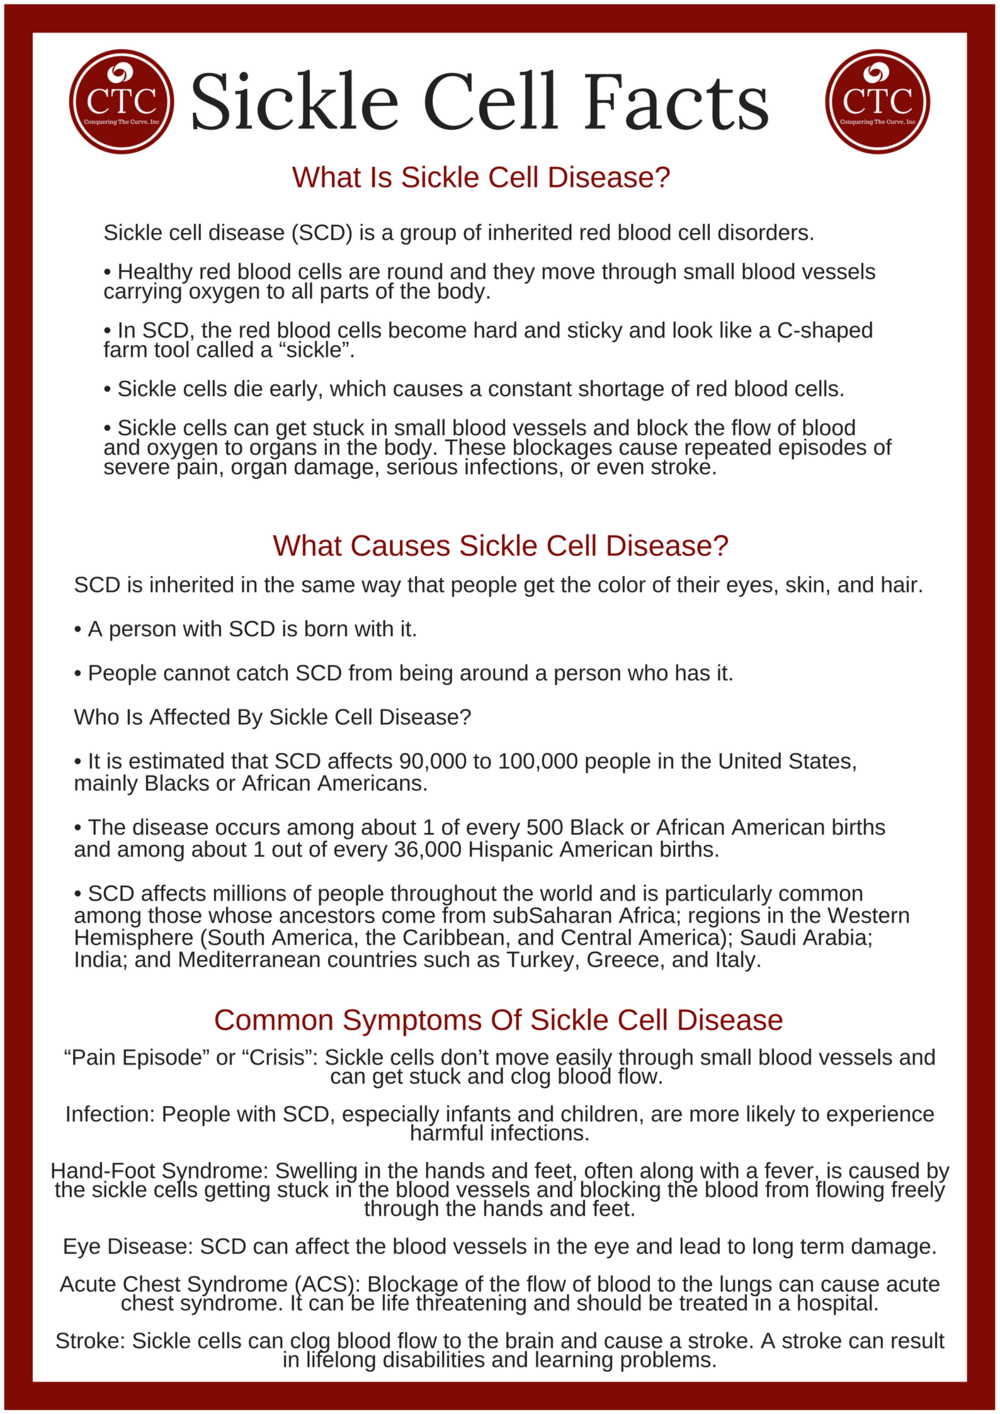 sickle cell facts